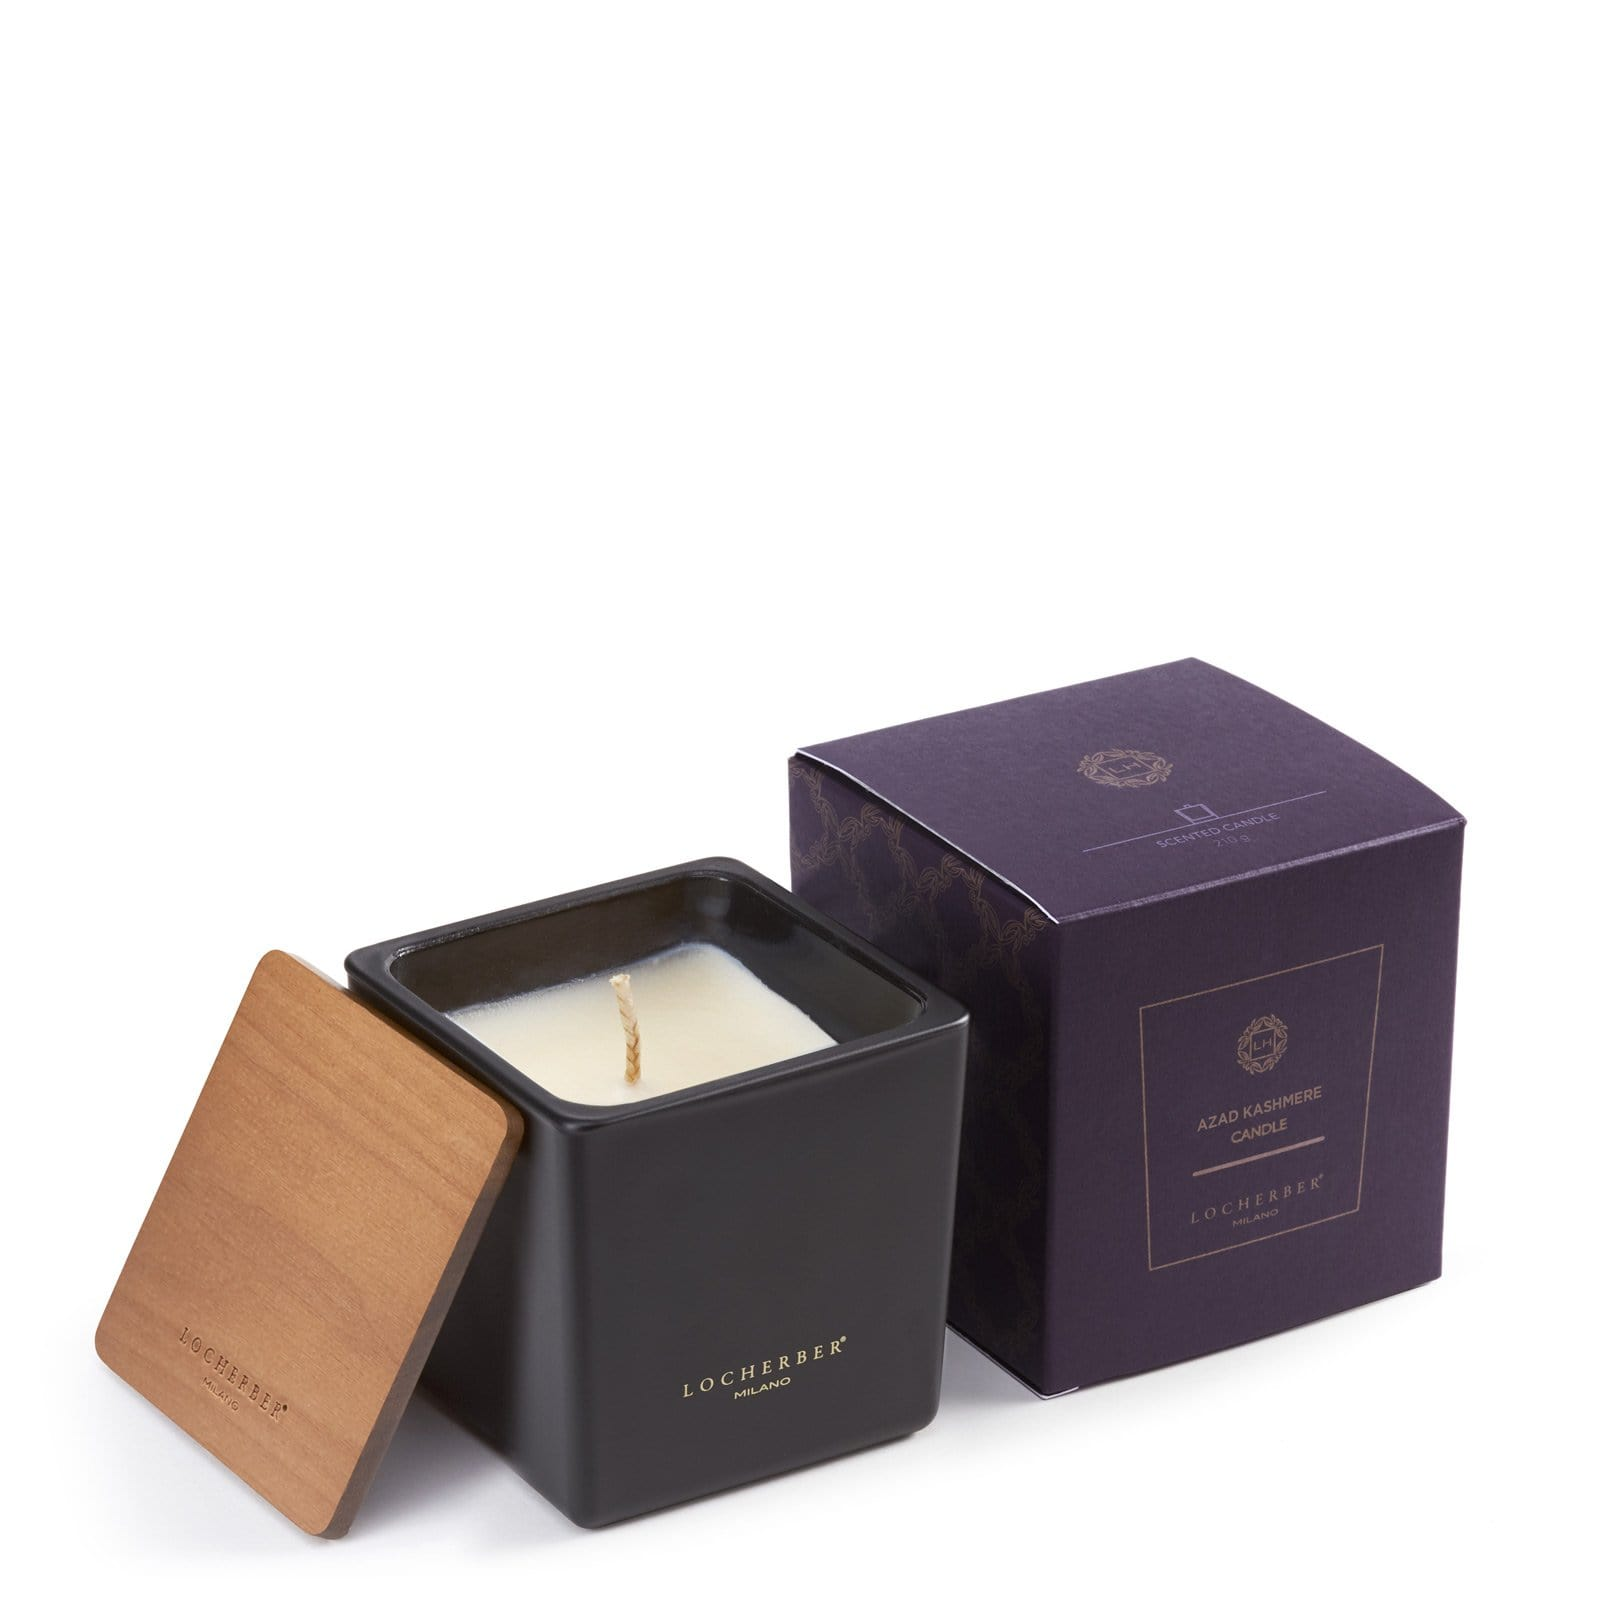 Locherber Milano Home Fragrance 210g Azad Kashmere Candle